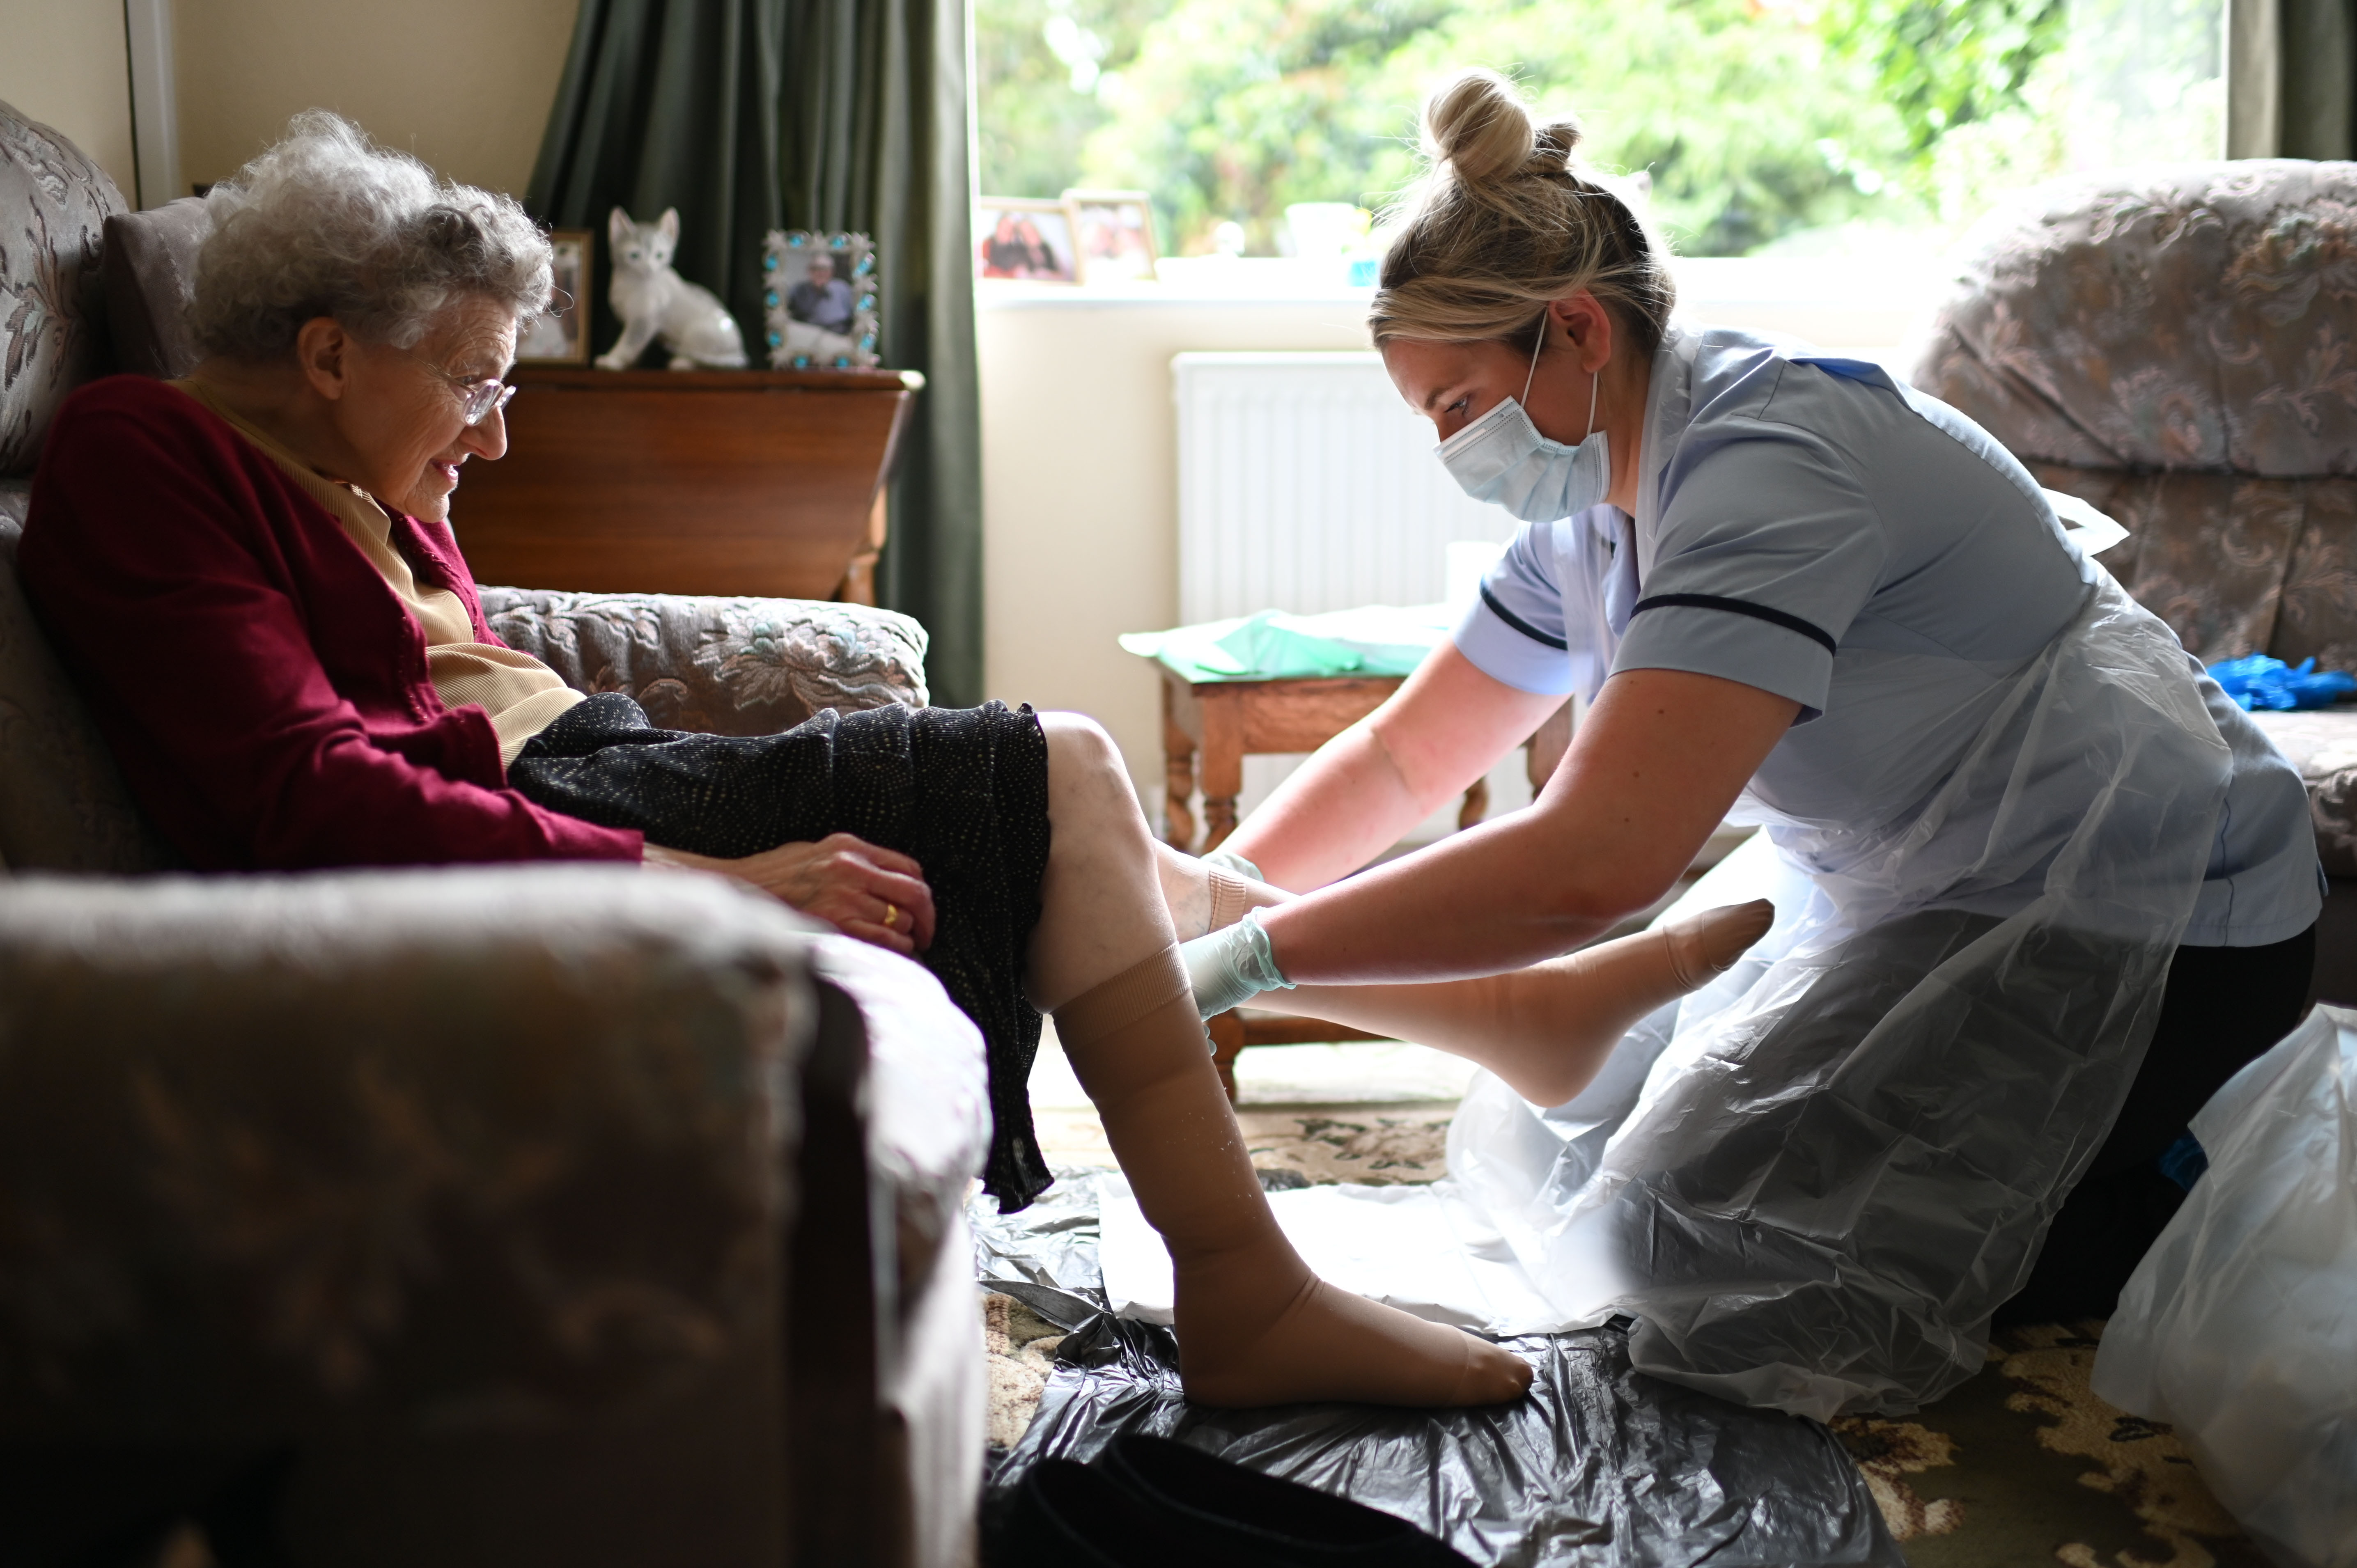 GRIMSBY, ENGLAND - JUNE 09: District nurse Rebecca McKenzie (R), wearing personal protective equipment (PPE) changes the dressings on the legs of 86-year-old Margaret Ashton (L) to treat her leg ulcers during a home visit on June 9, 2020 in Grimsby, northeast England. (Photo by Daniel Leal-Olivas - Pool/Getty Images)